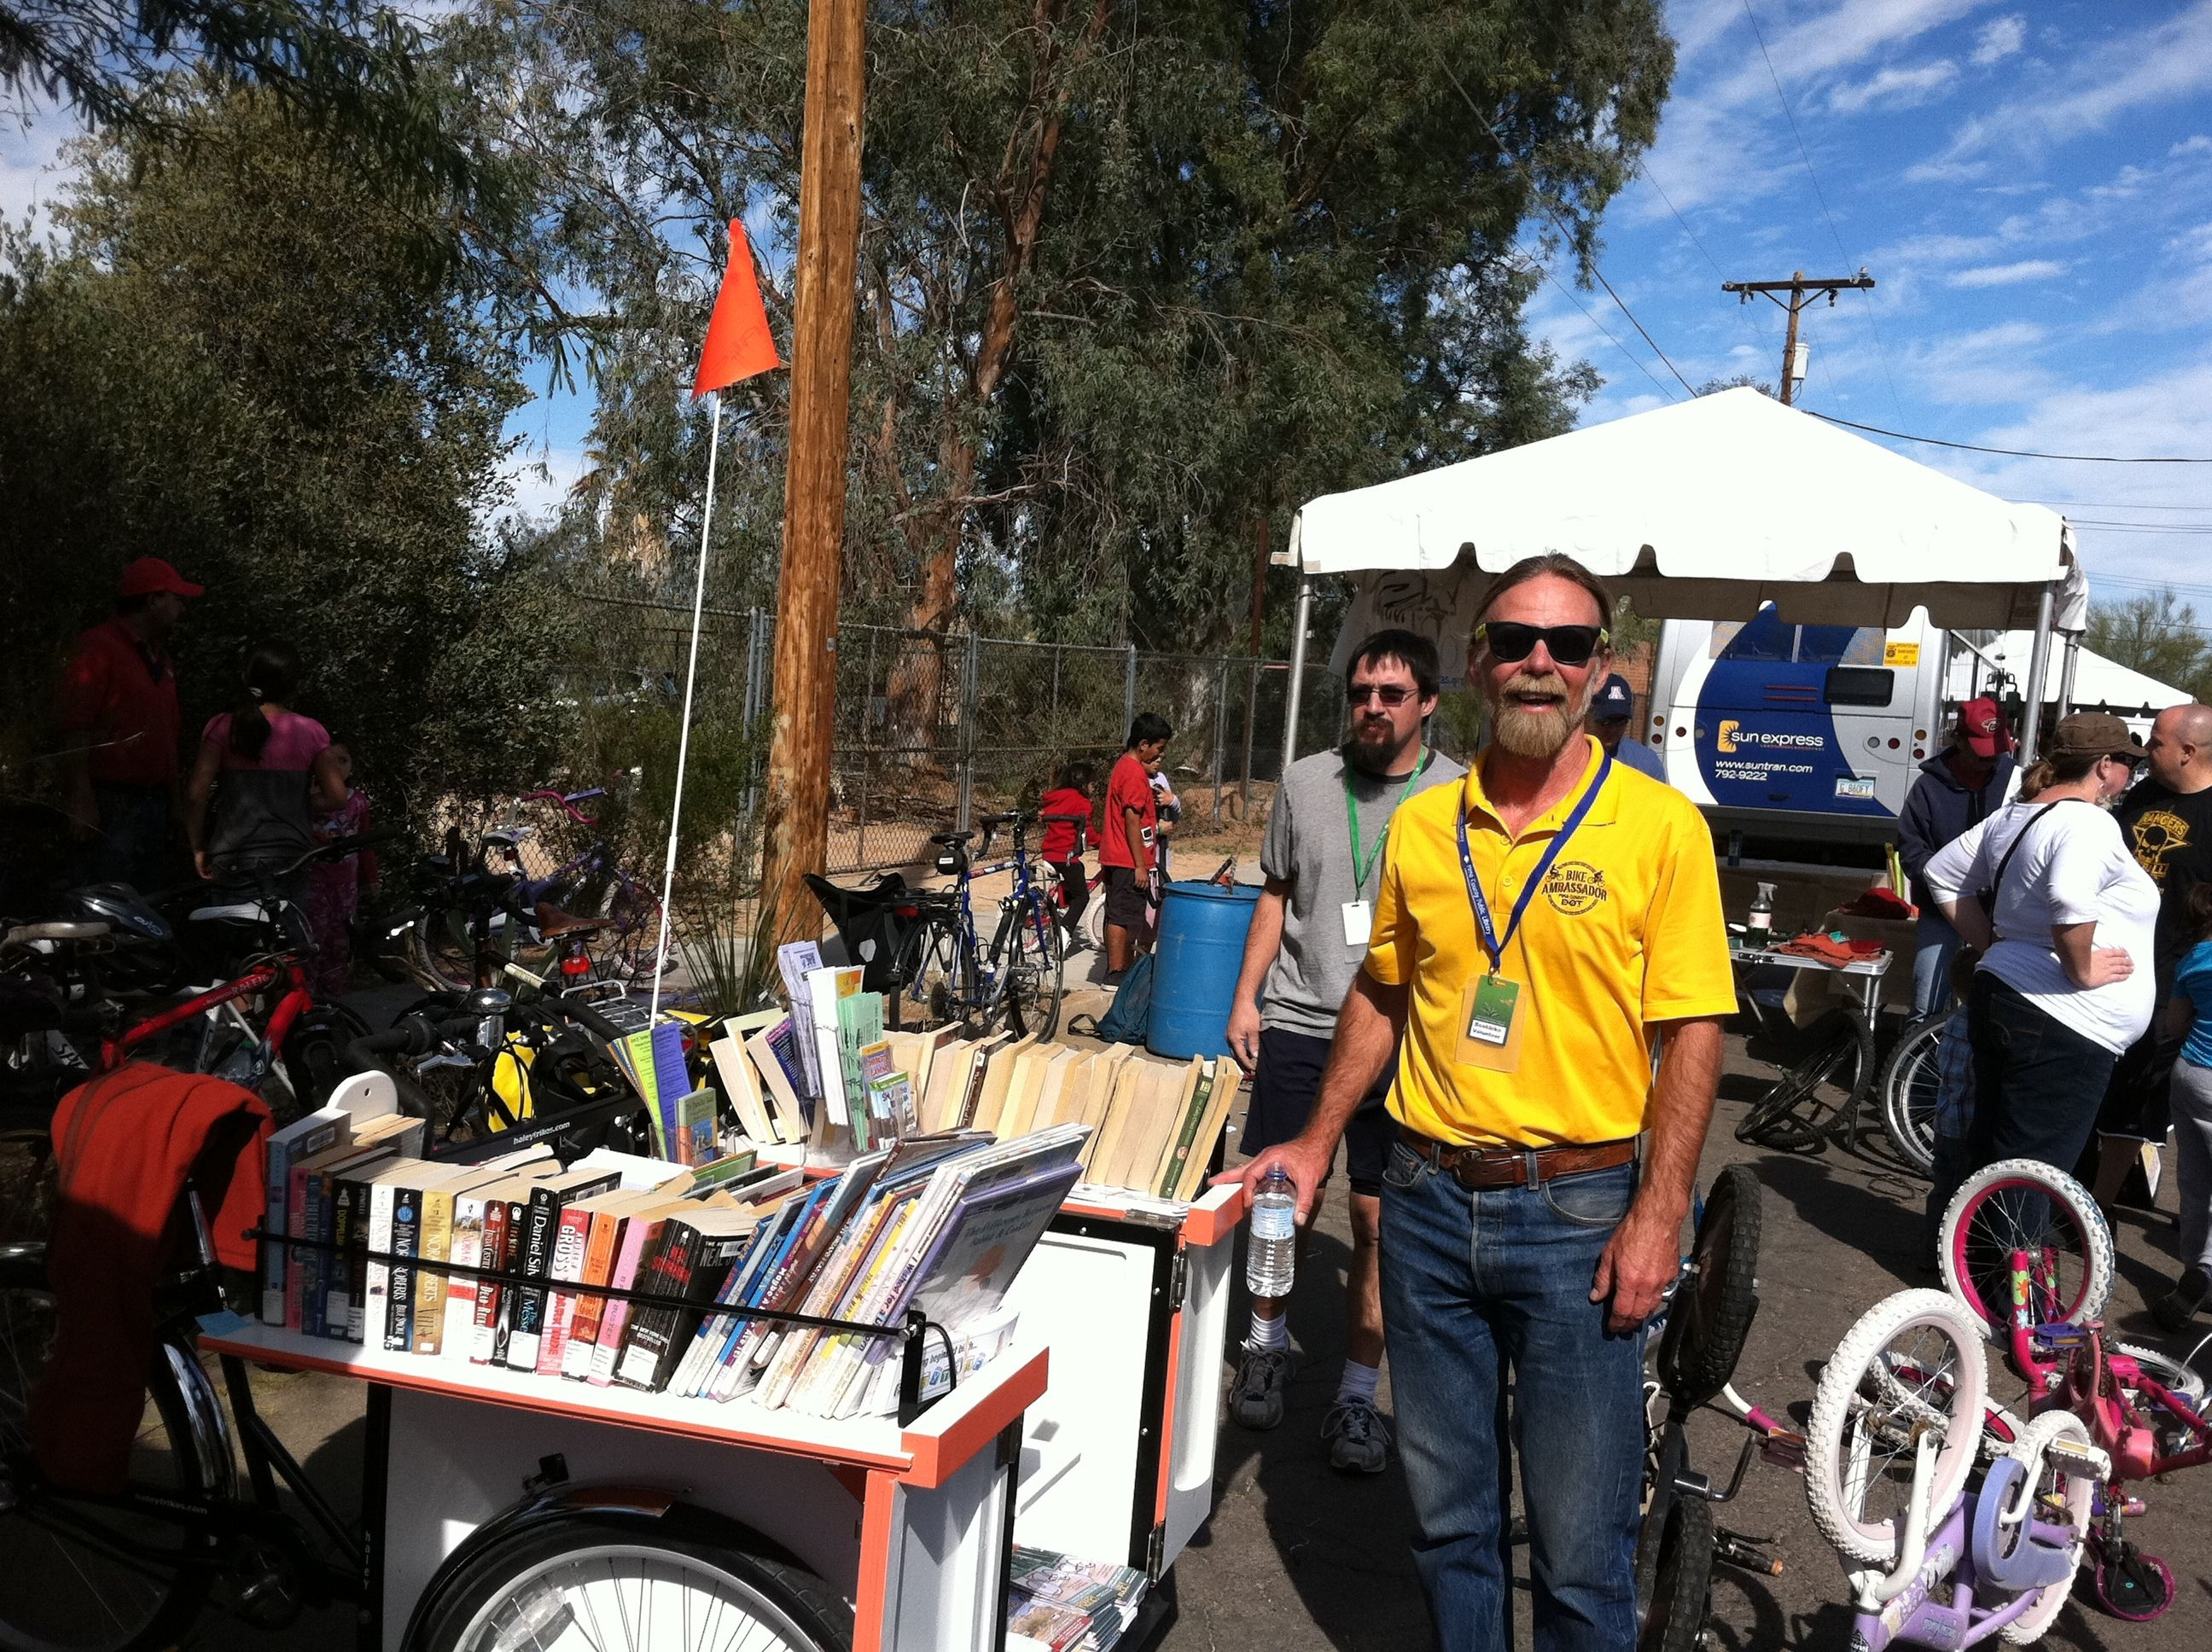 Bookbike at community event